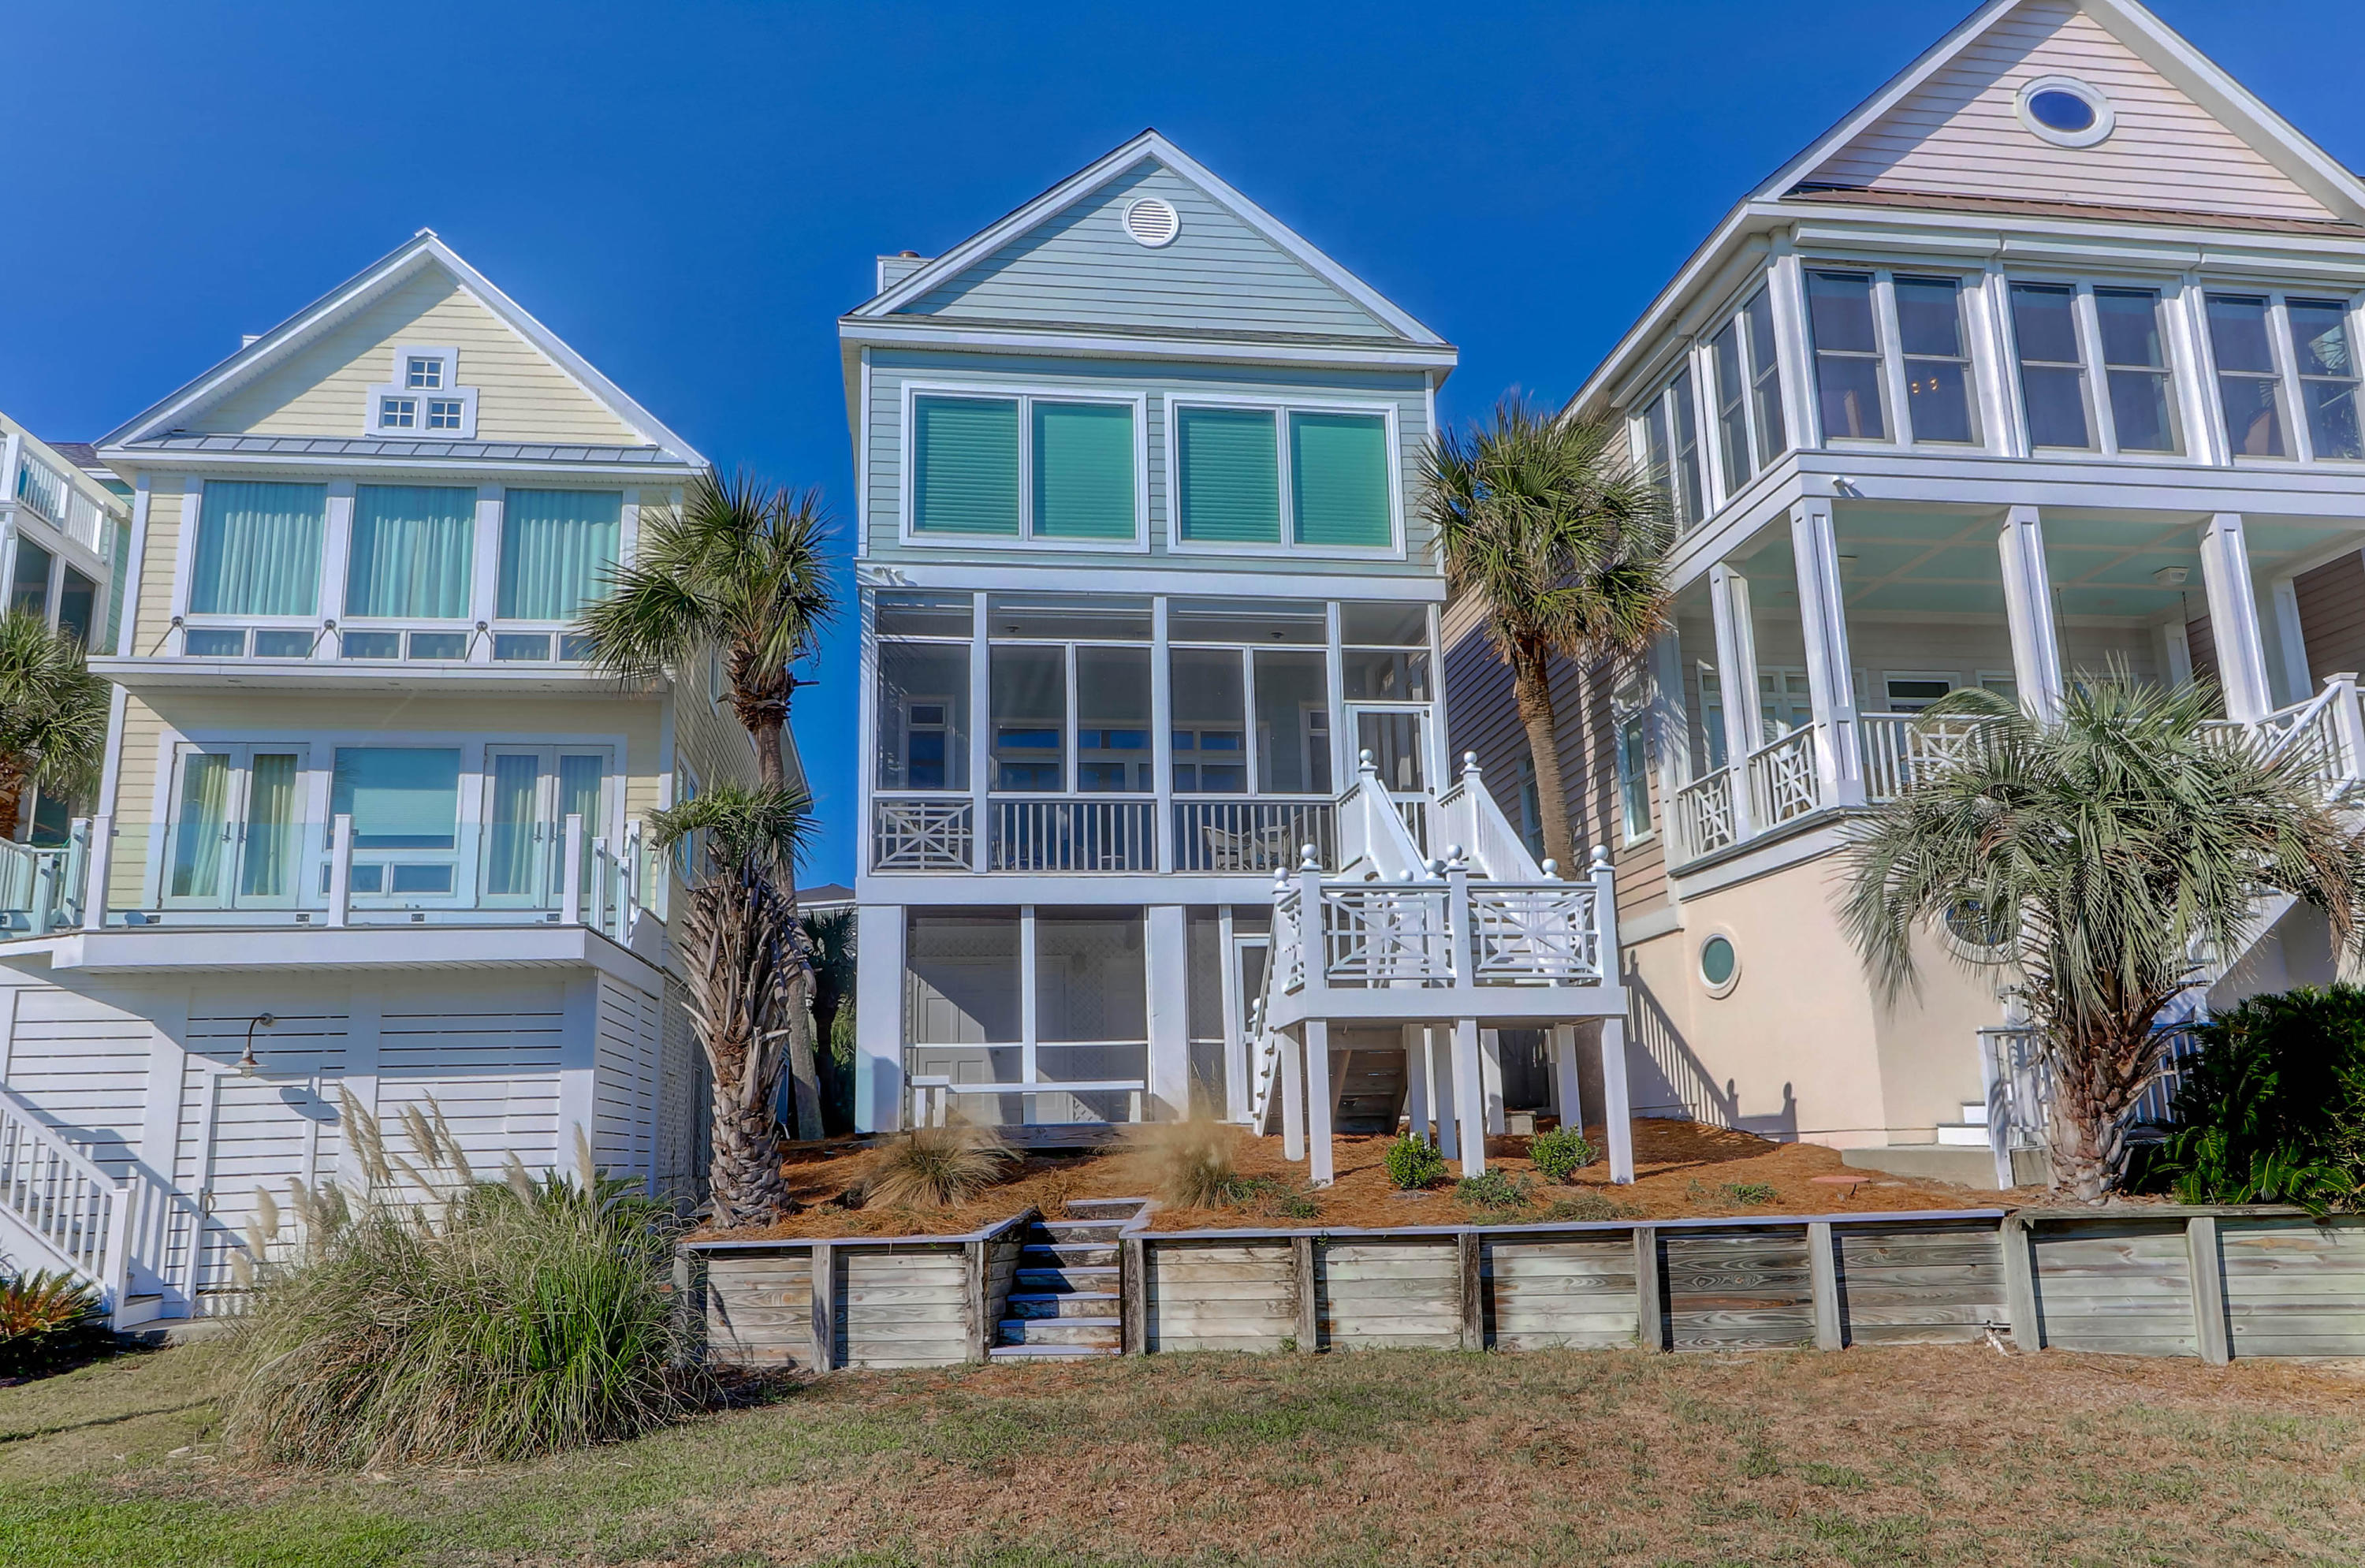 Wild Dunes Homes For Sale - 36 Ocean Point, Isle of Palms, SC - 3